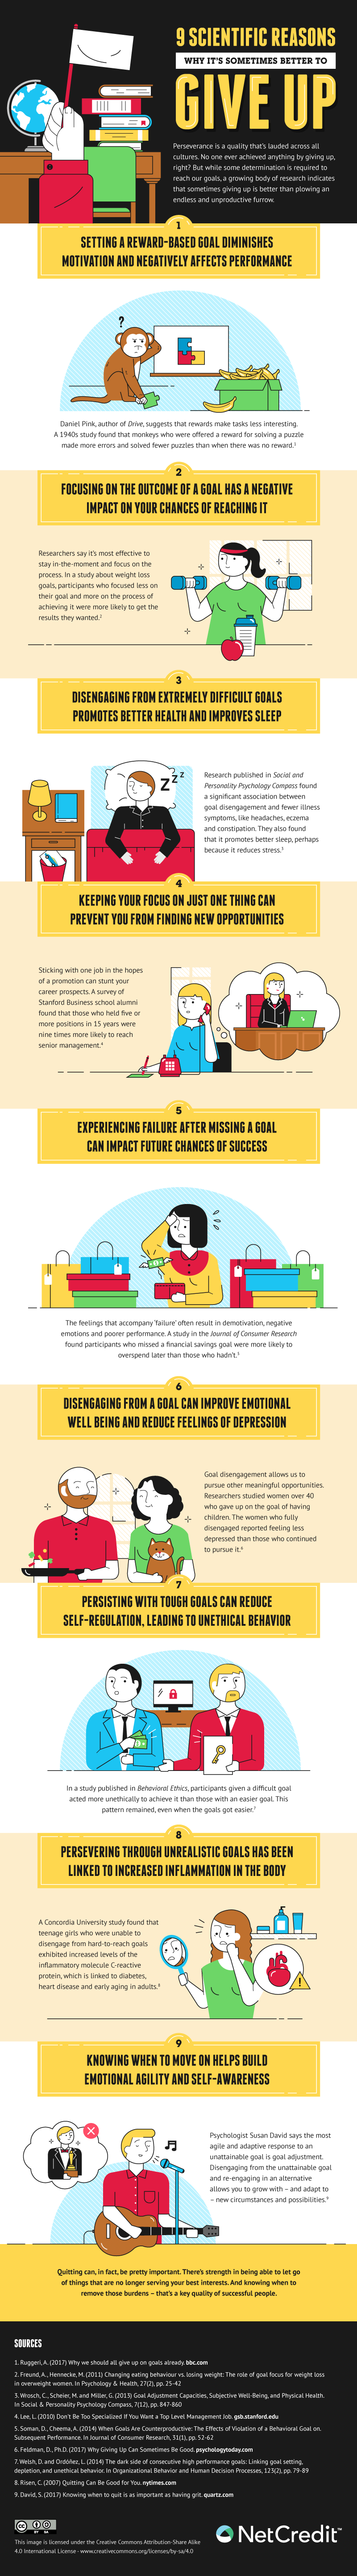 9-Scientific-Reasons-Why-Its-Sometimes-Better-to-Give-Up